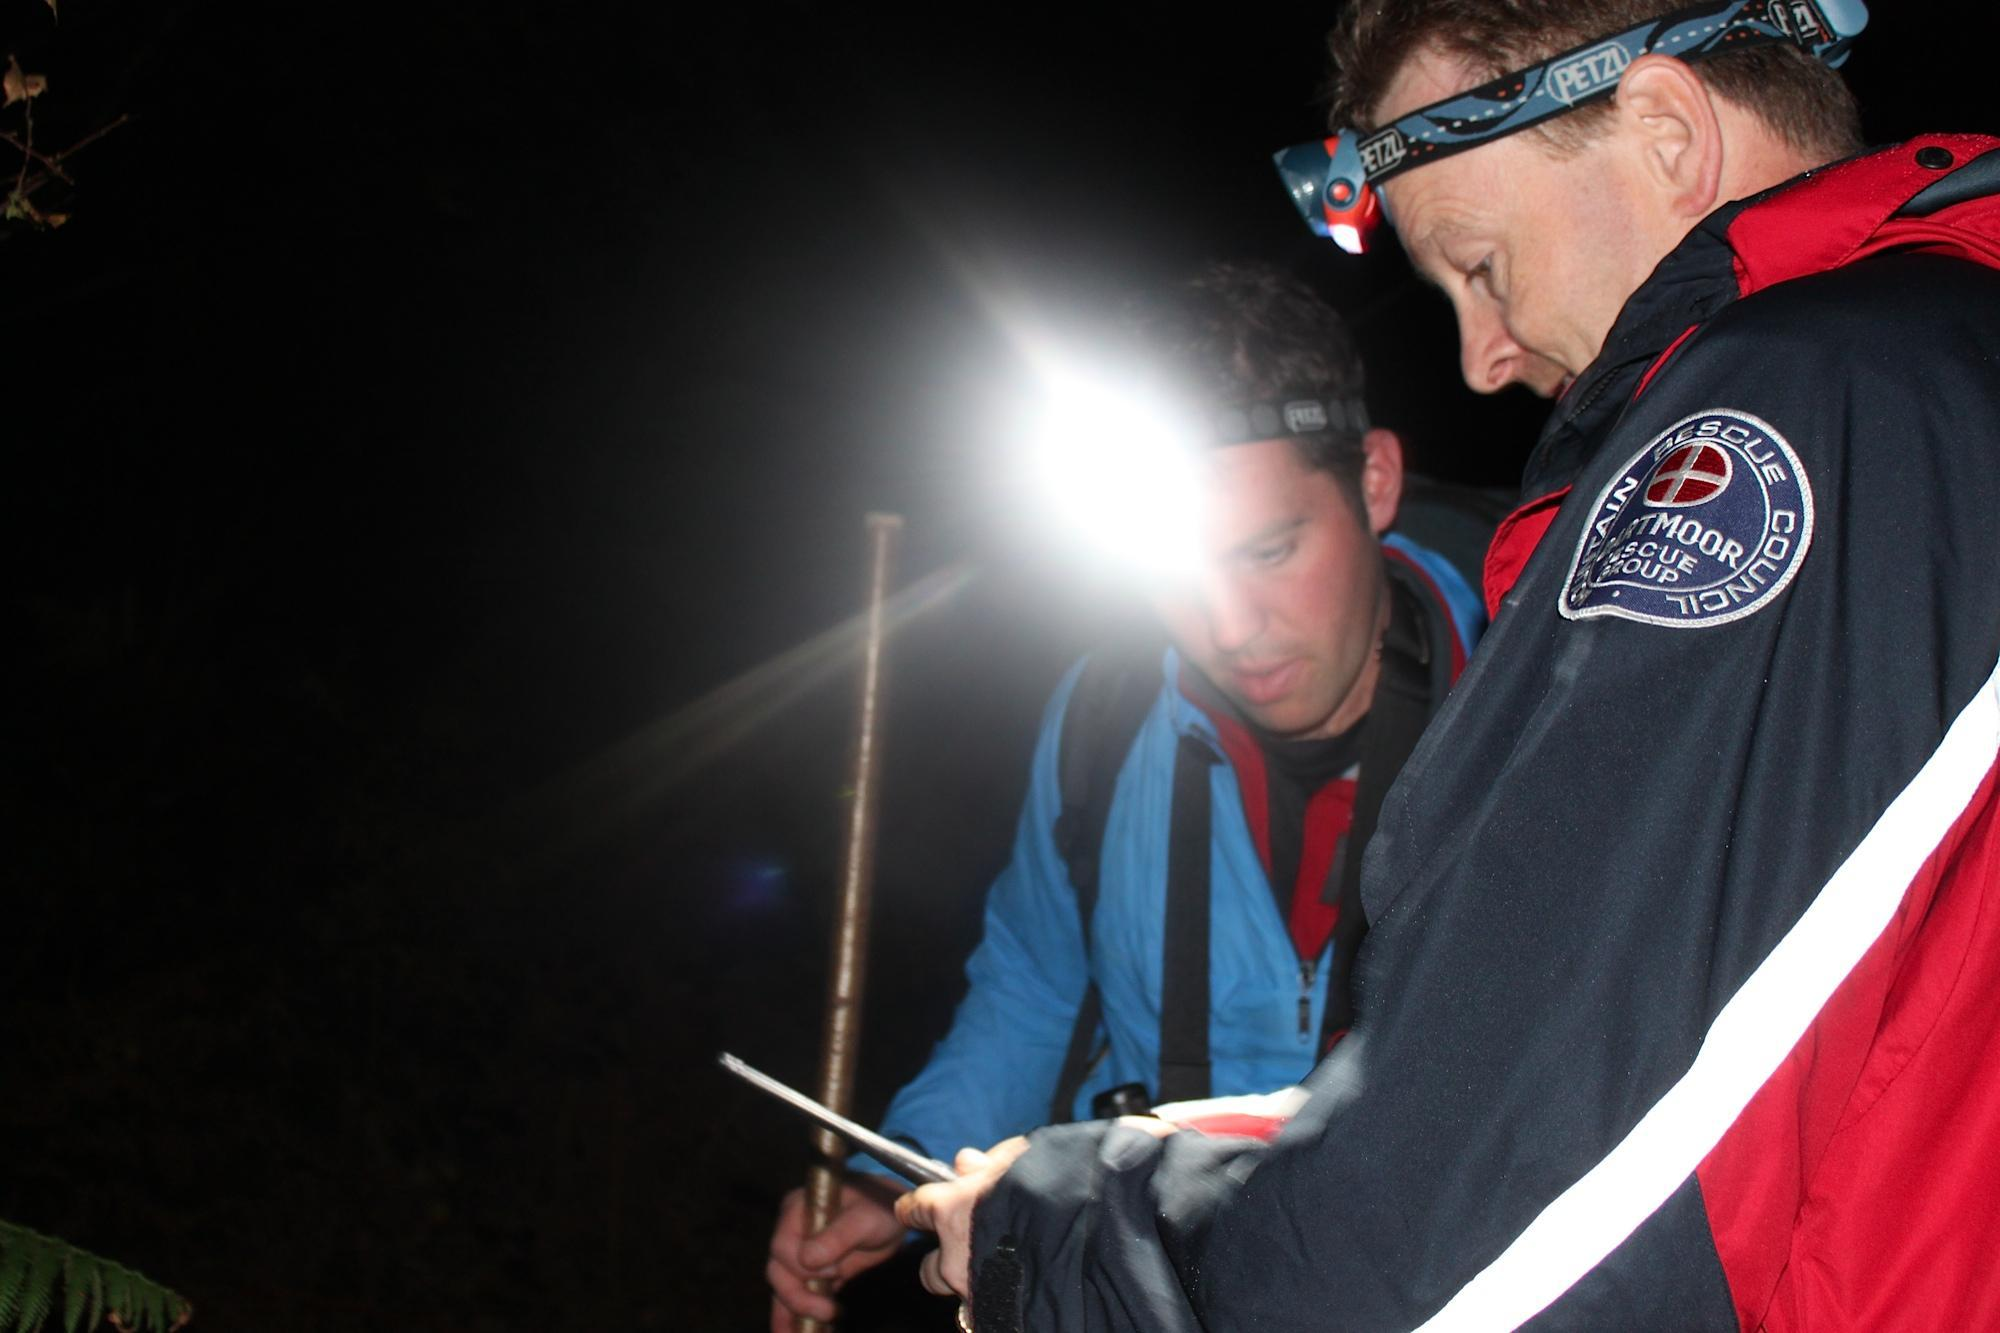 Dartmoor Search and Rescue Team - Ashburton members consulting a map during a night search